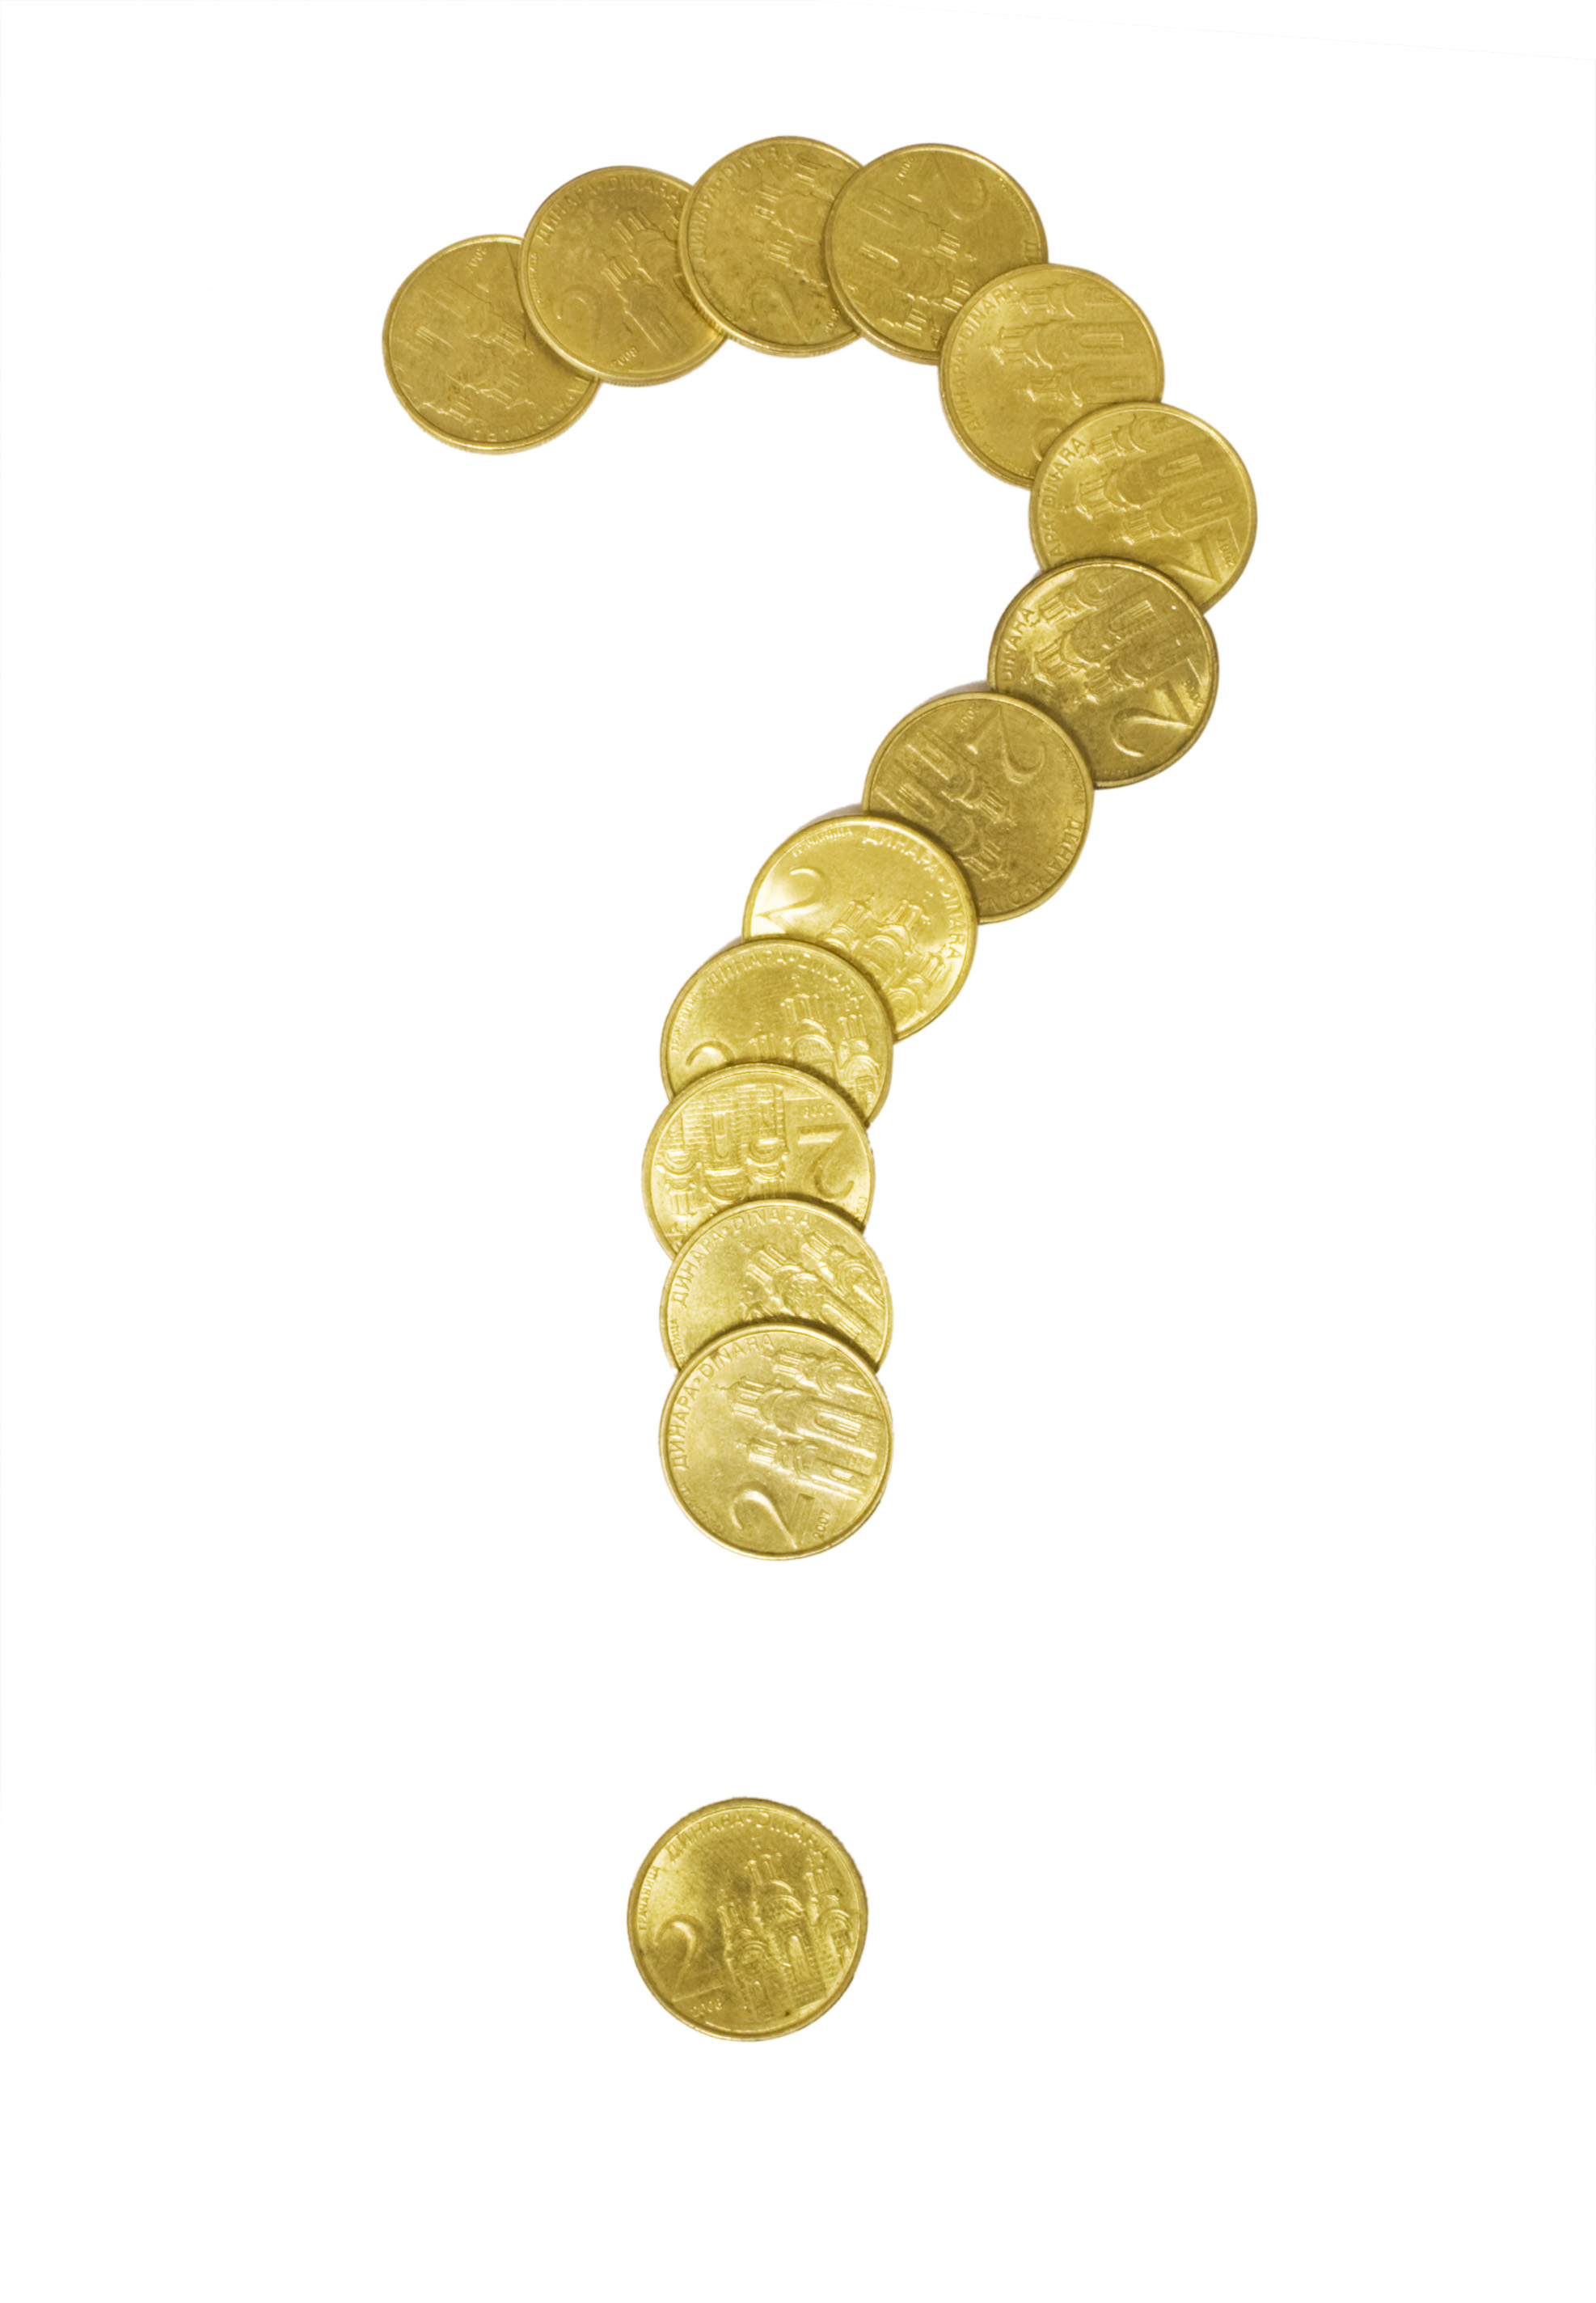 Late payment and SMEs: Confusion